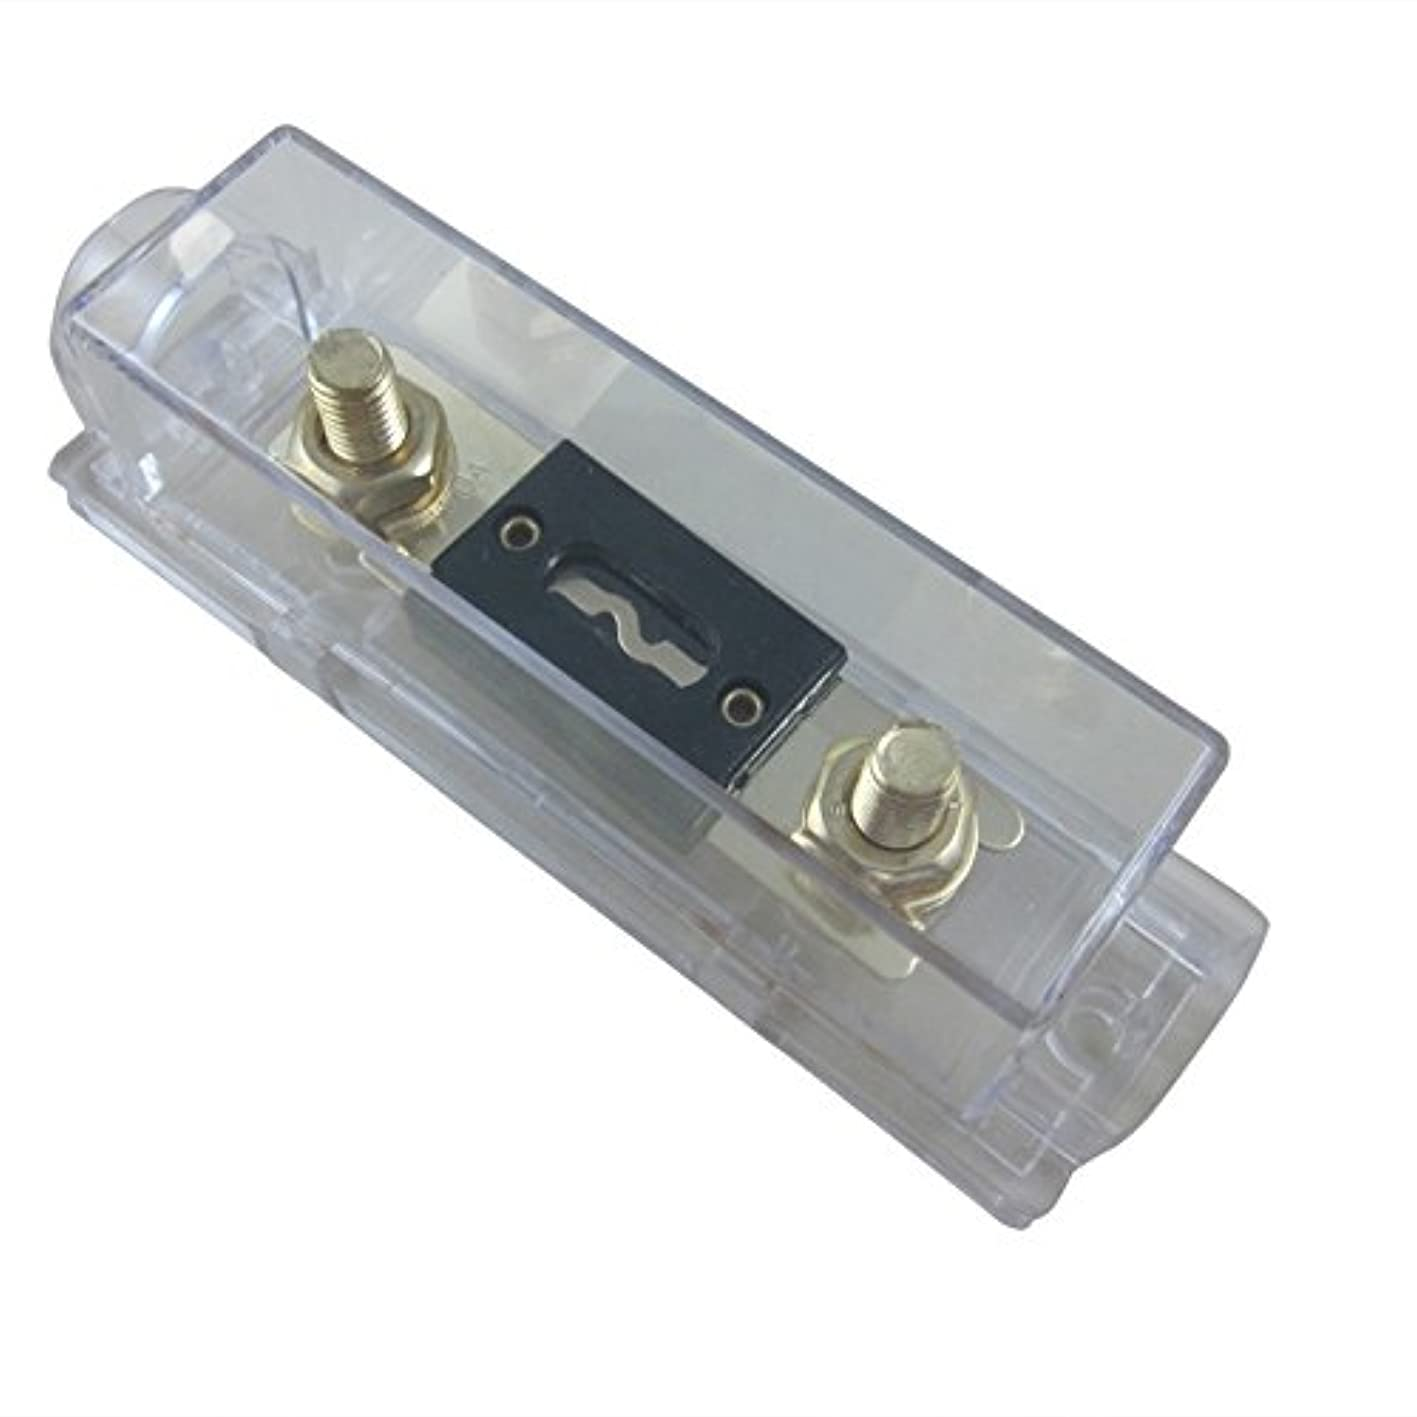 DIGITEN Car Auto Stereo Audio Inline ANL Holder 0 2 4 Gauge+150A Amp Gold Plated Fuse wbgvqneaano945